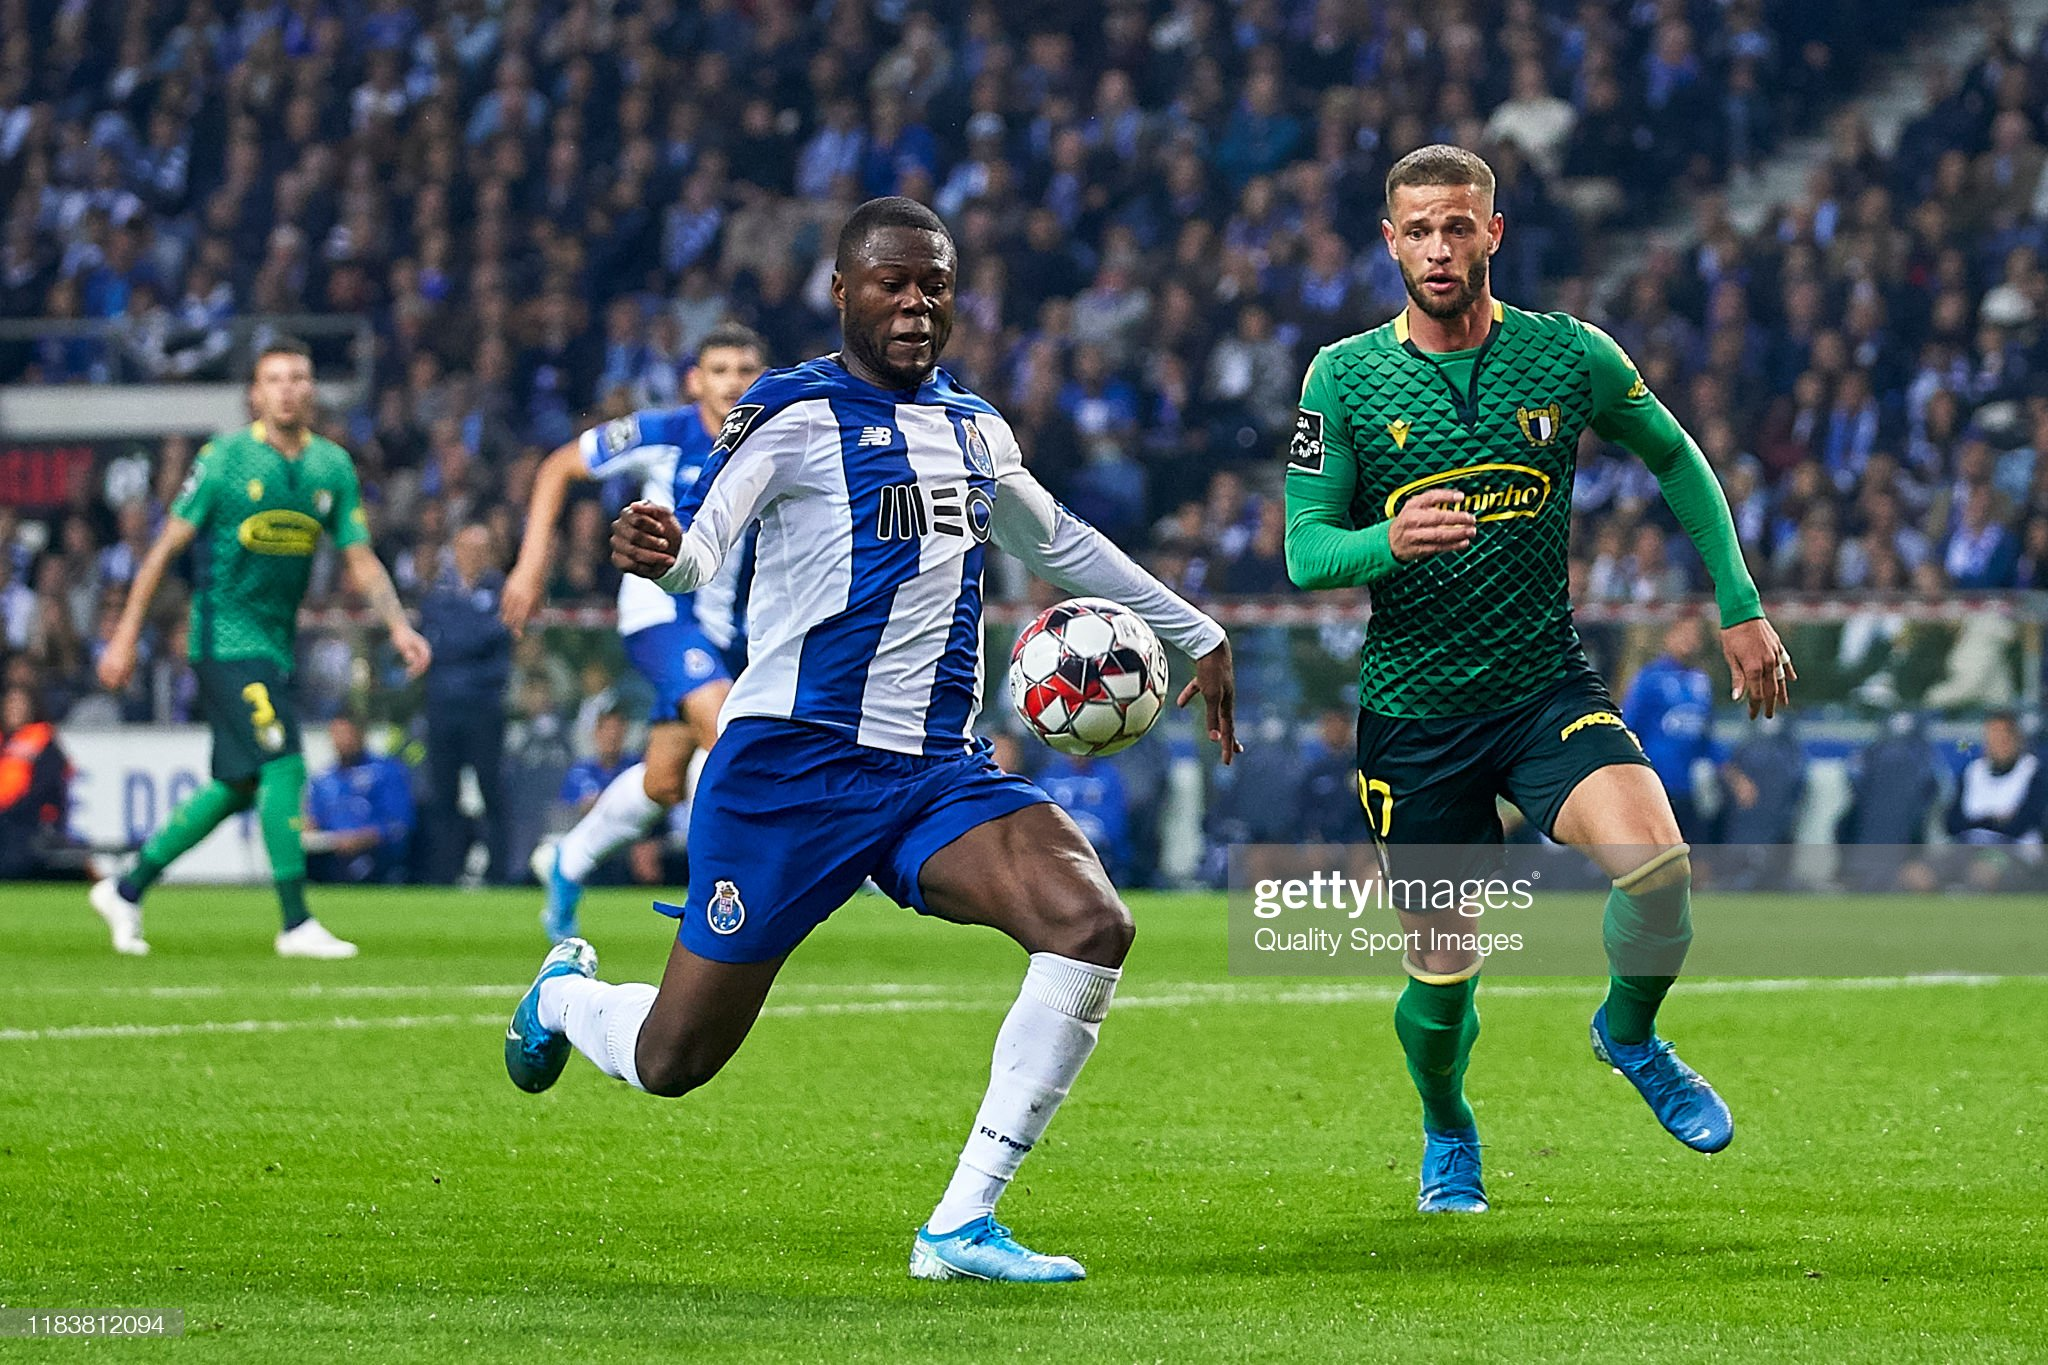 Famalicao vs Porto Preview, prediction and odds